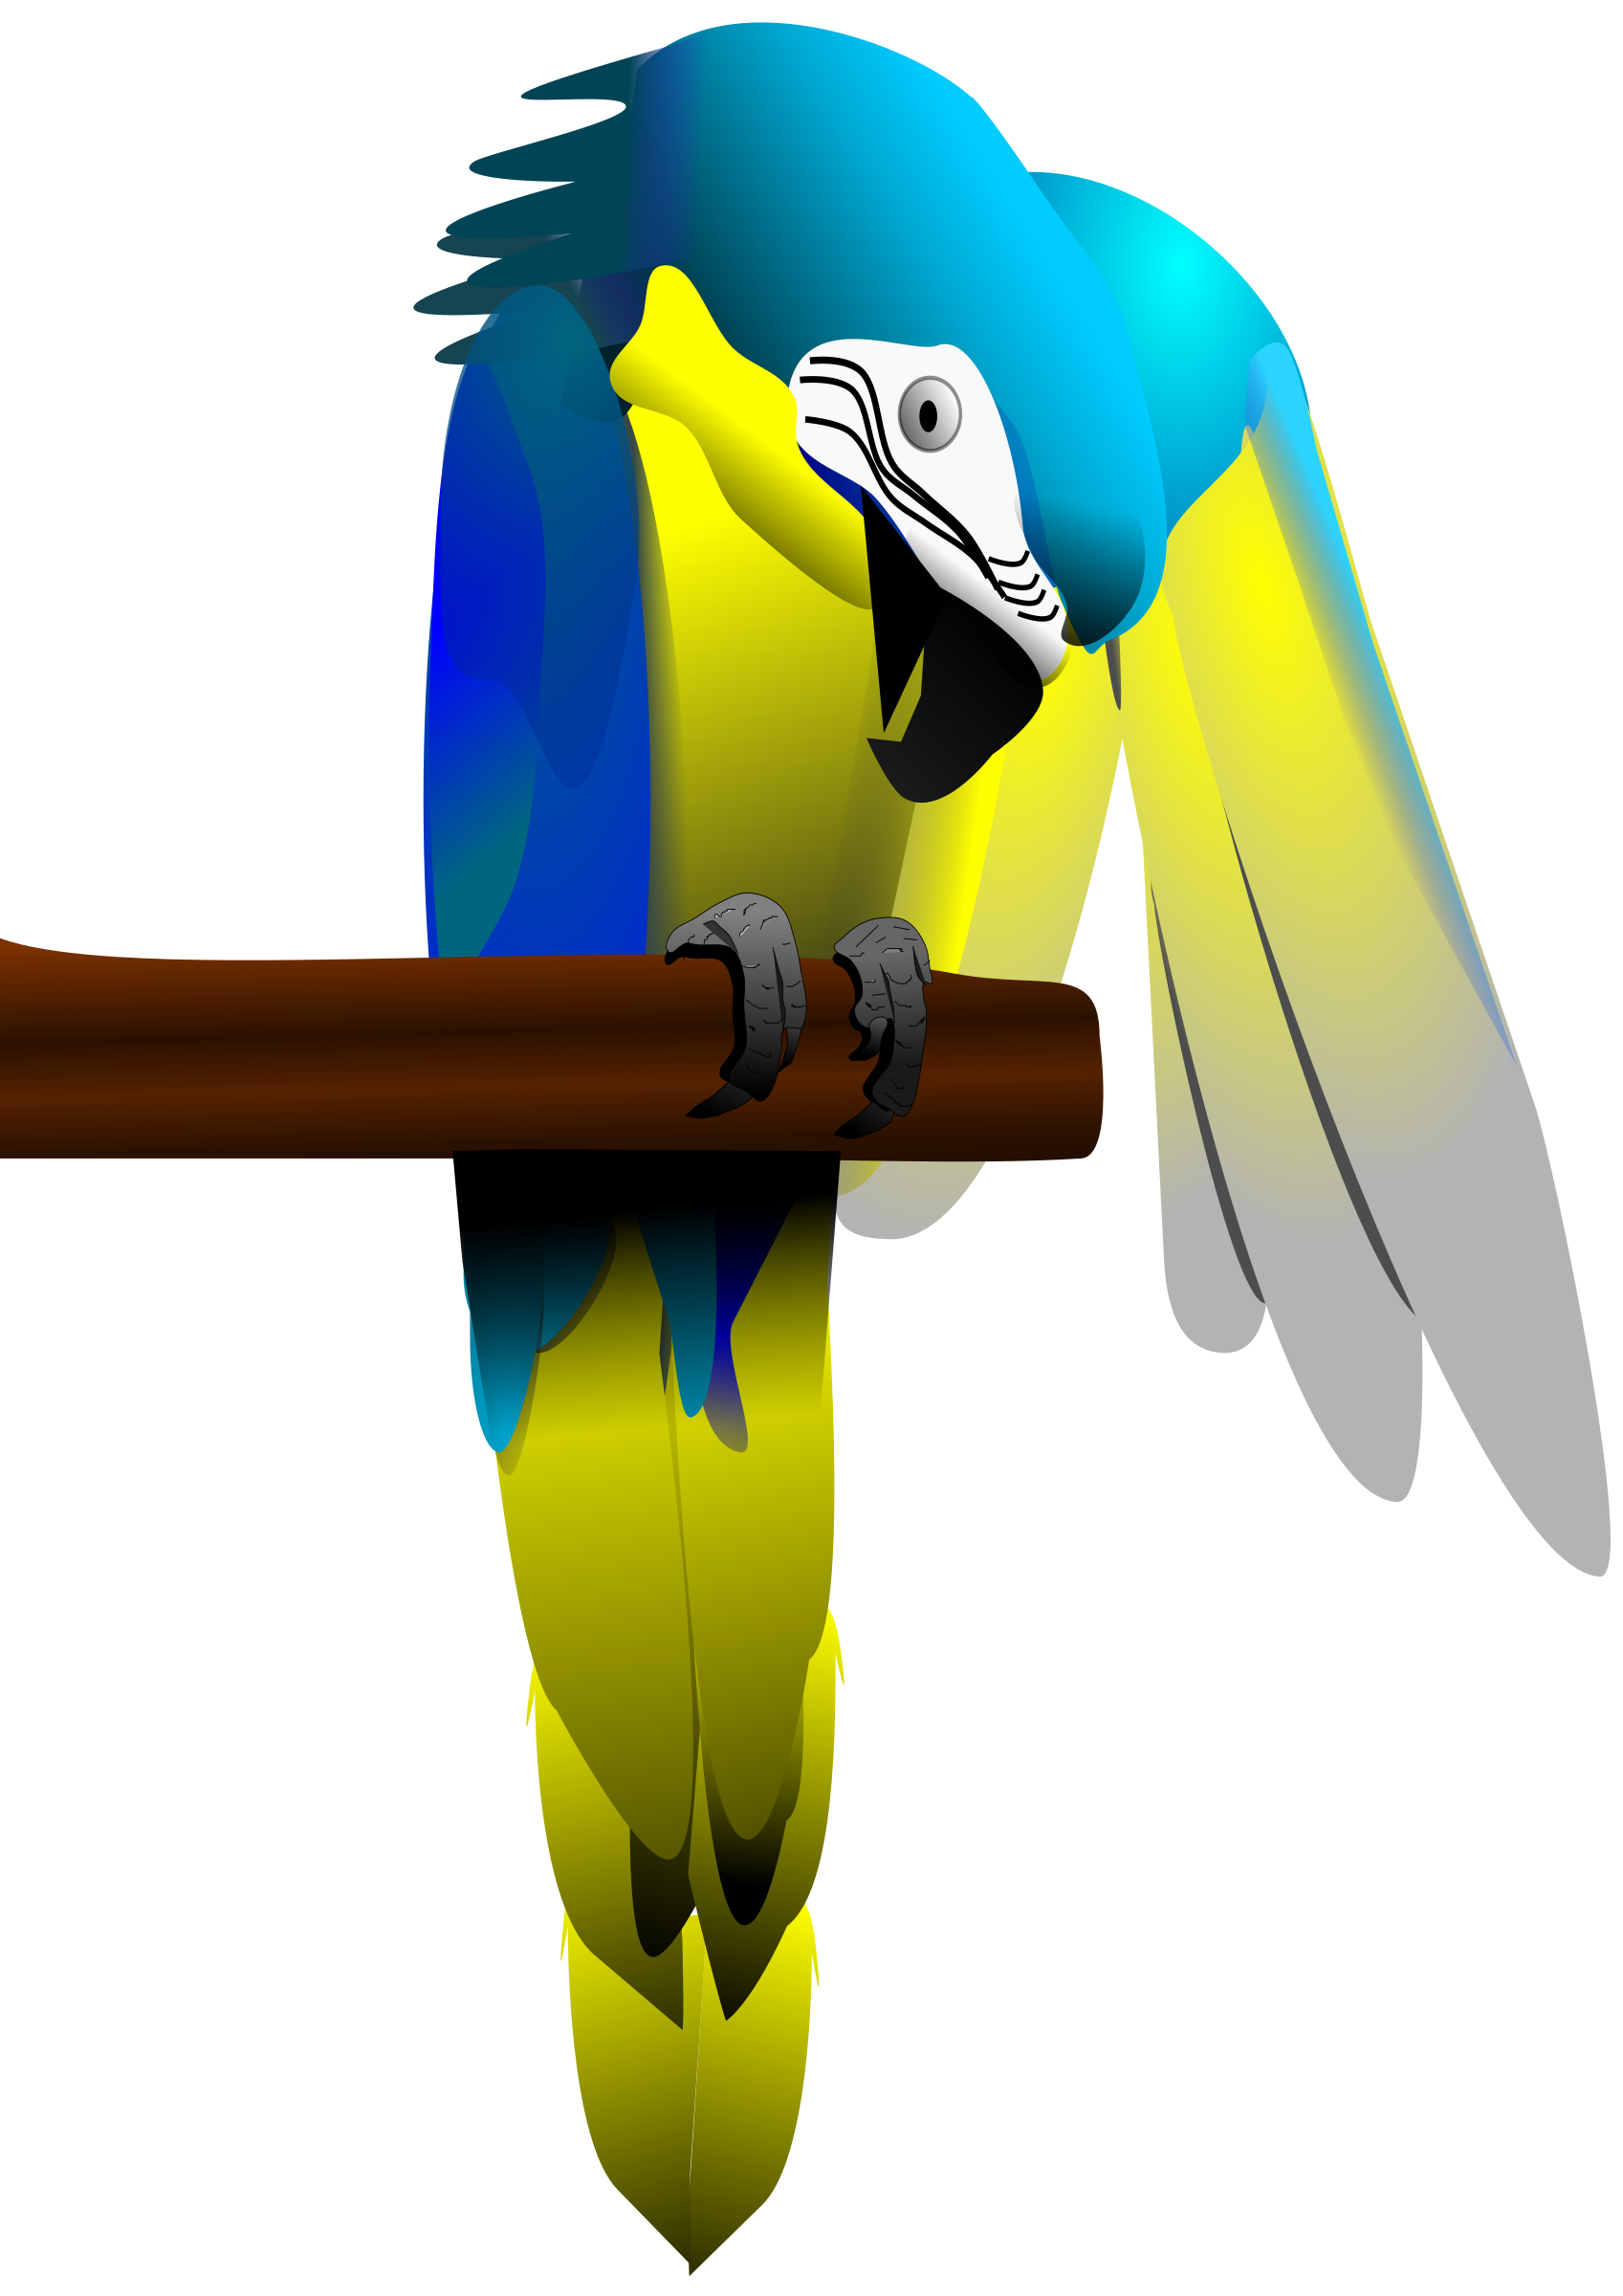 Blue and Yellow Macaw Parrot by adw3163